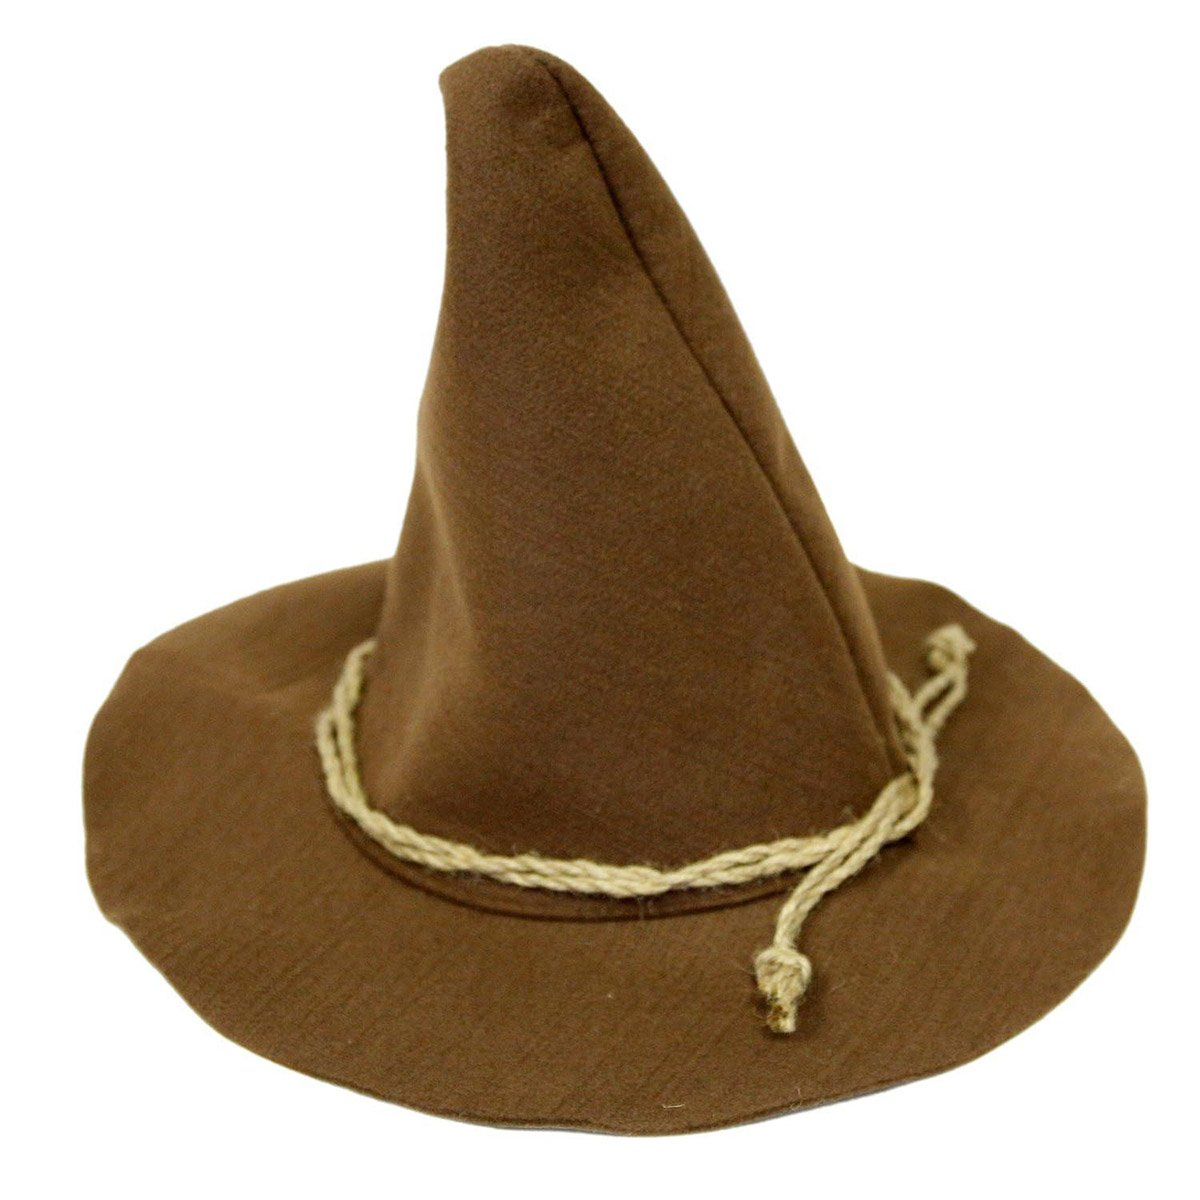 124c093c215 Adult Scarecrow Hat Deluxe Felt Oktoberfest Wizard of Oz Hillbilly Hat  Costume product image